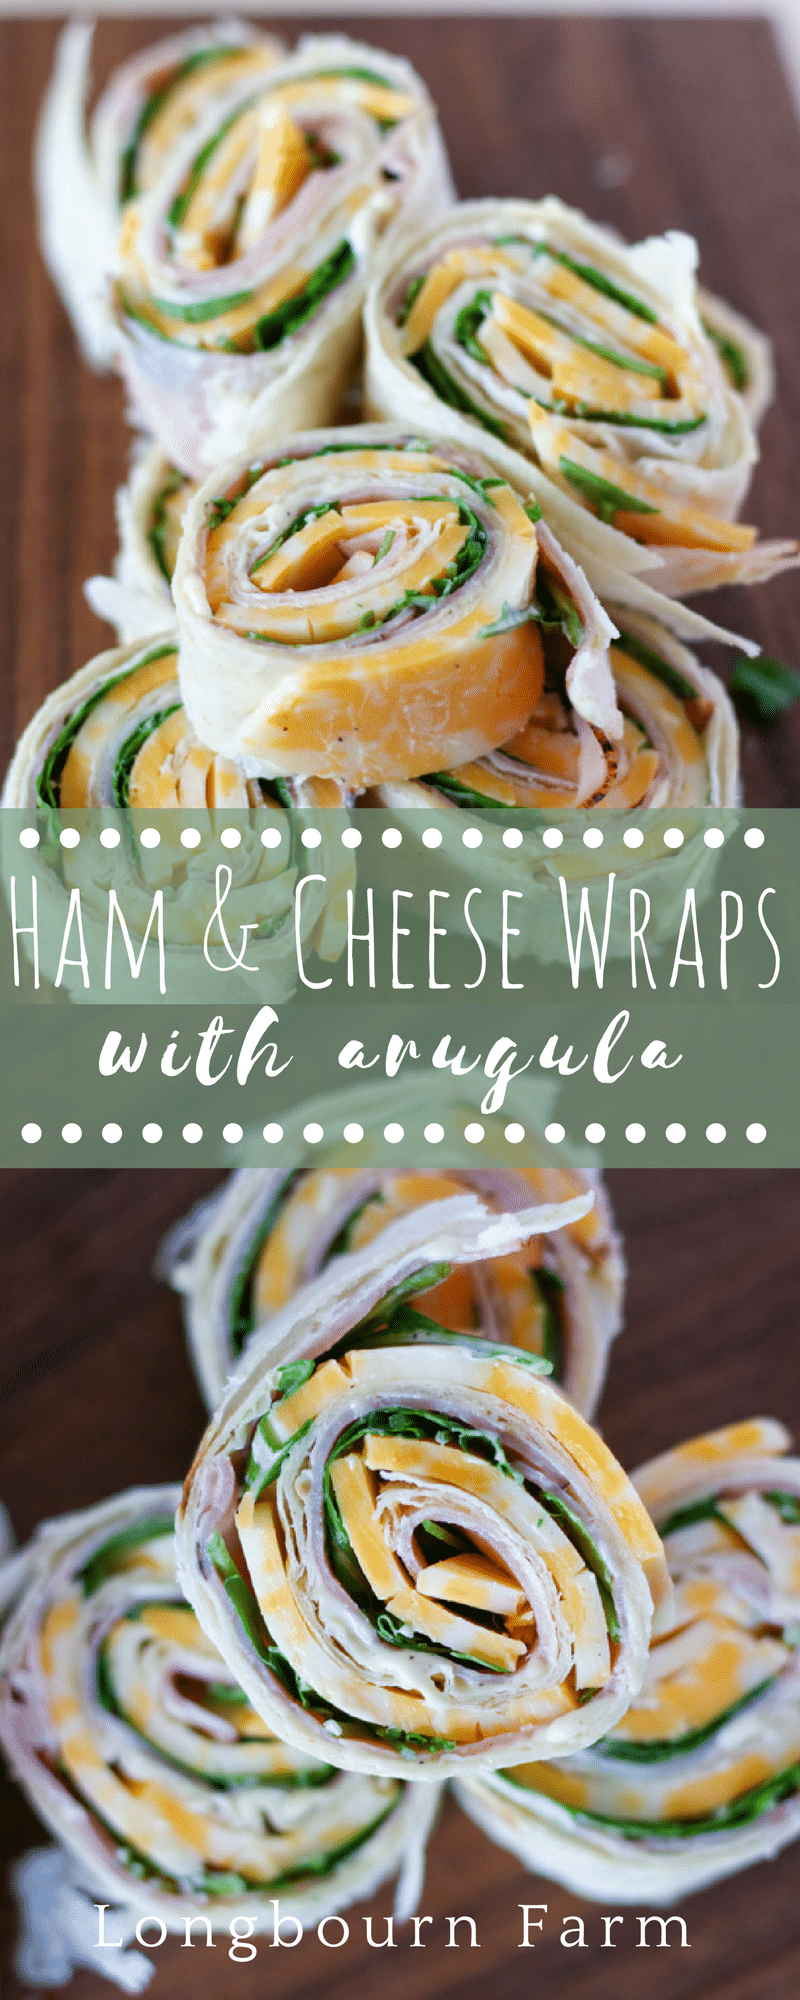 These easy ham roll ups make the perfect quick lunch or a delicious appetizer that is sure to please everyone! Kid and adult approved! via @longbournfarm